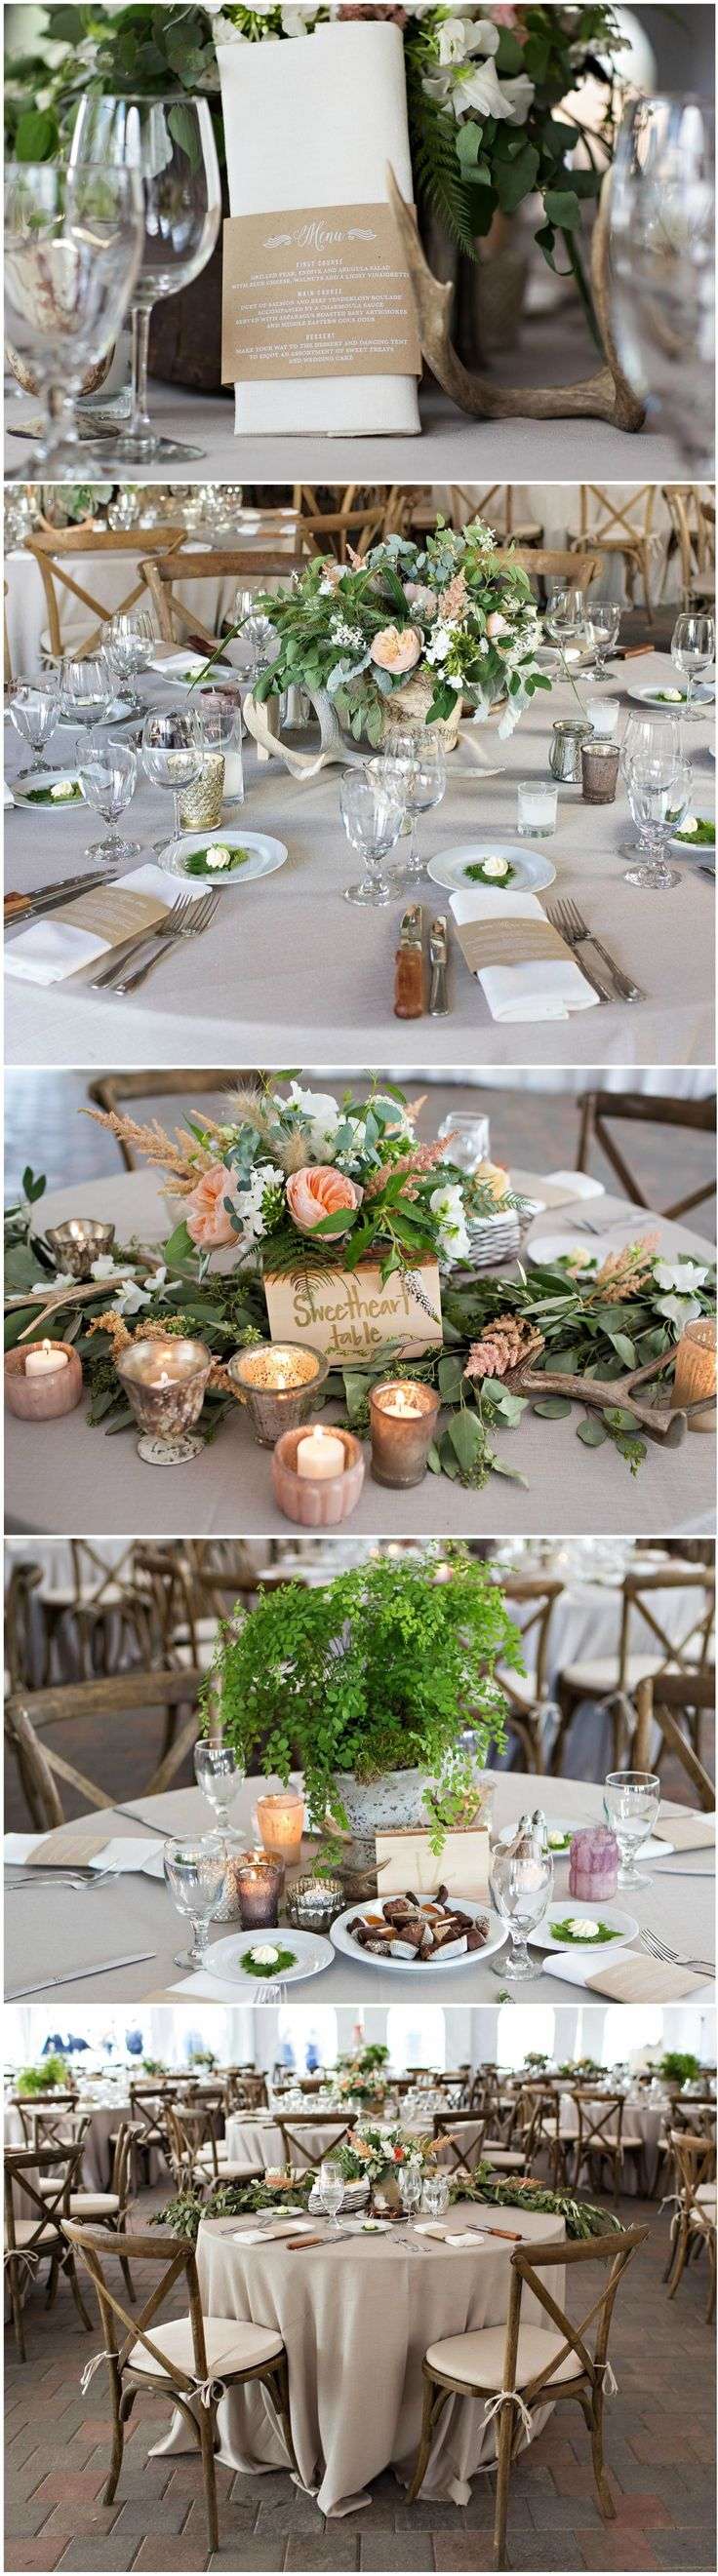 Rustic romance, wedding reception, table décor, antlers, peonies, votives, cross-back chairs // La Vie Photography